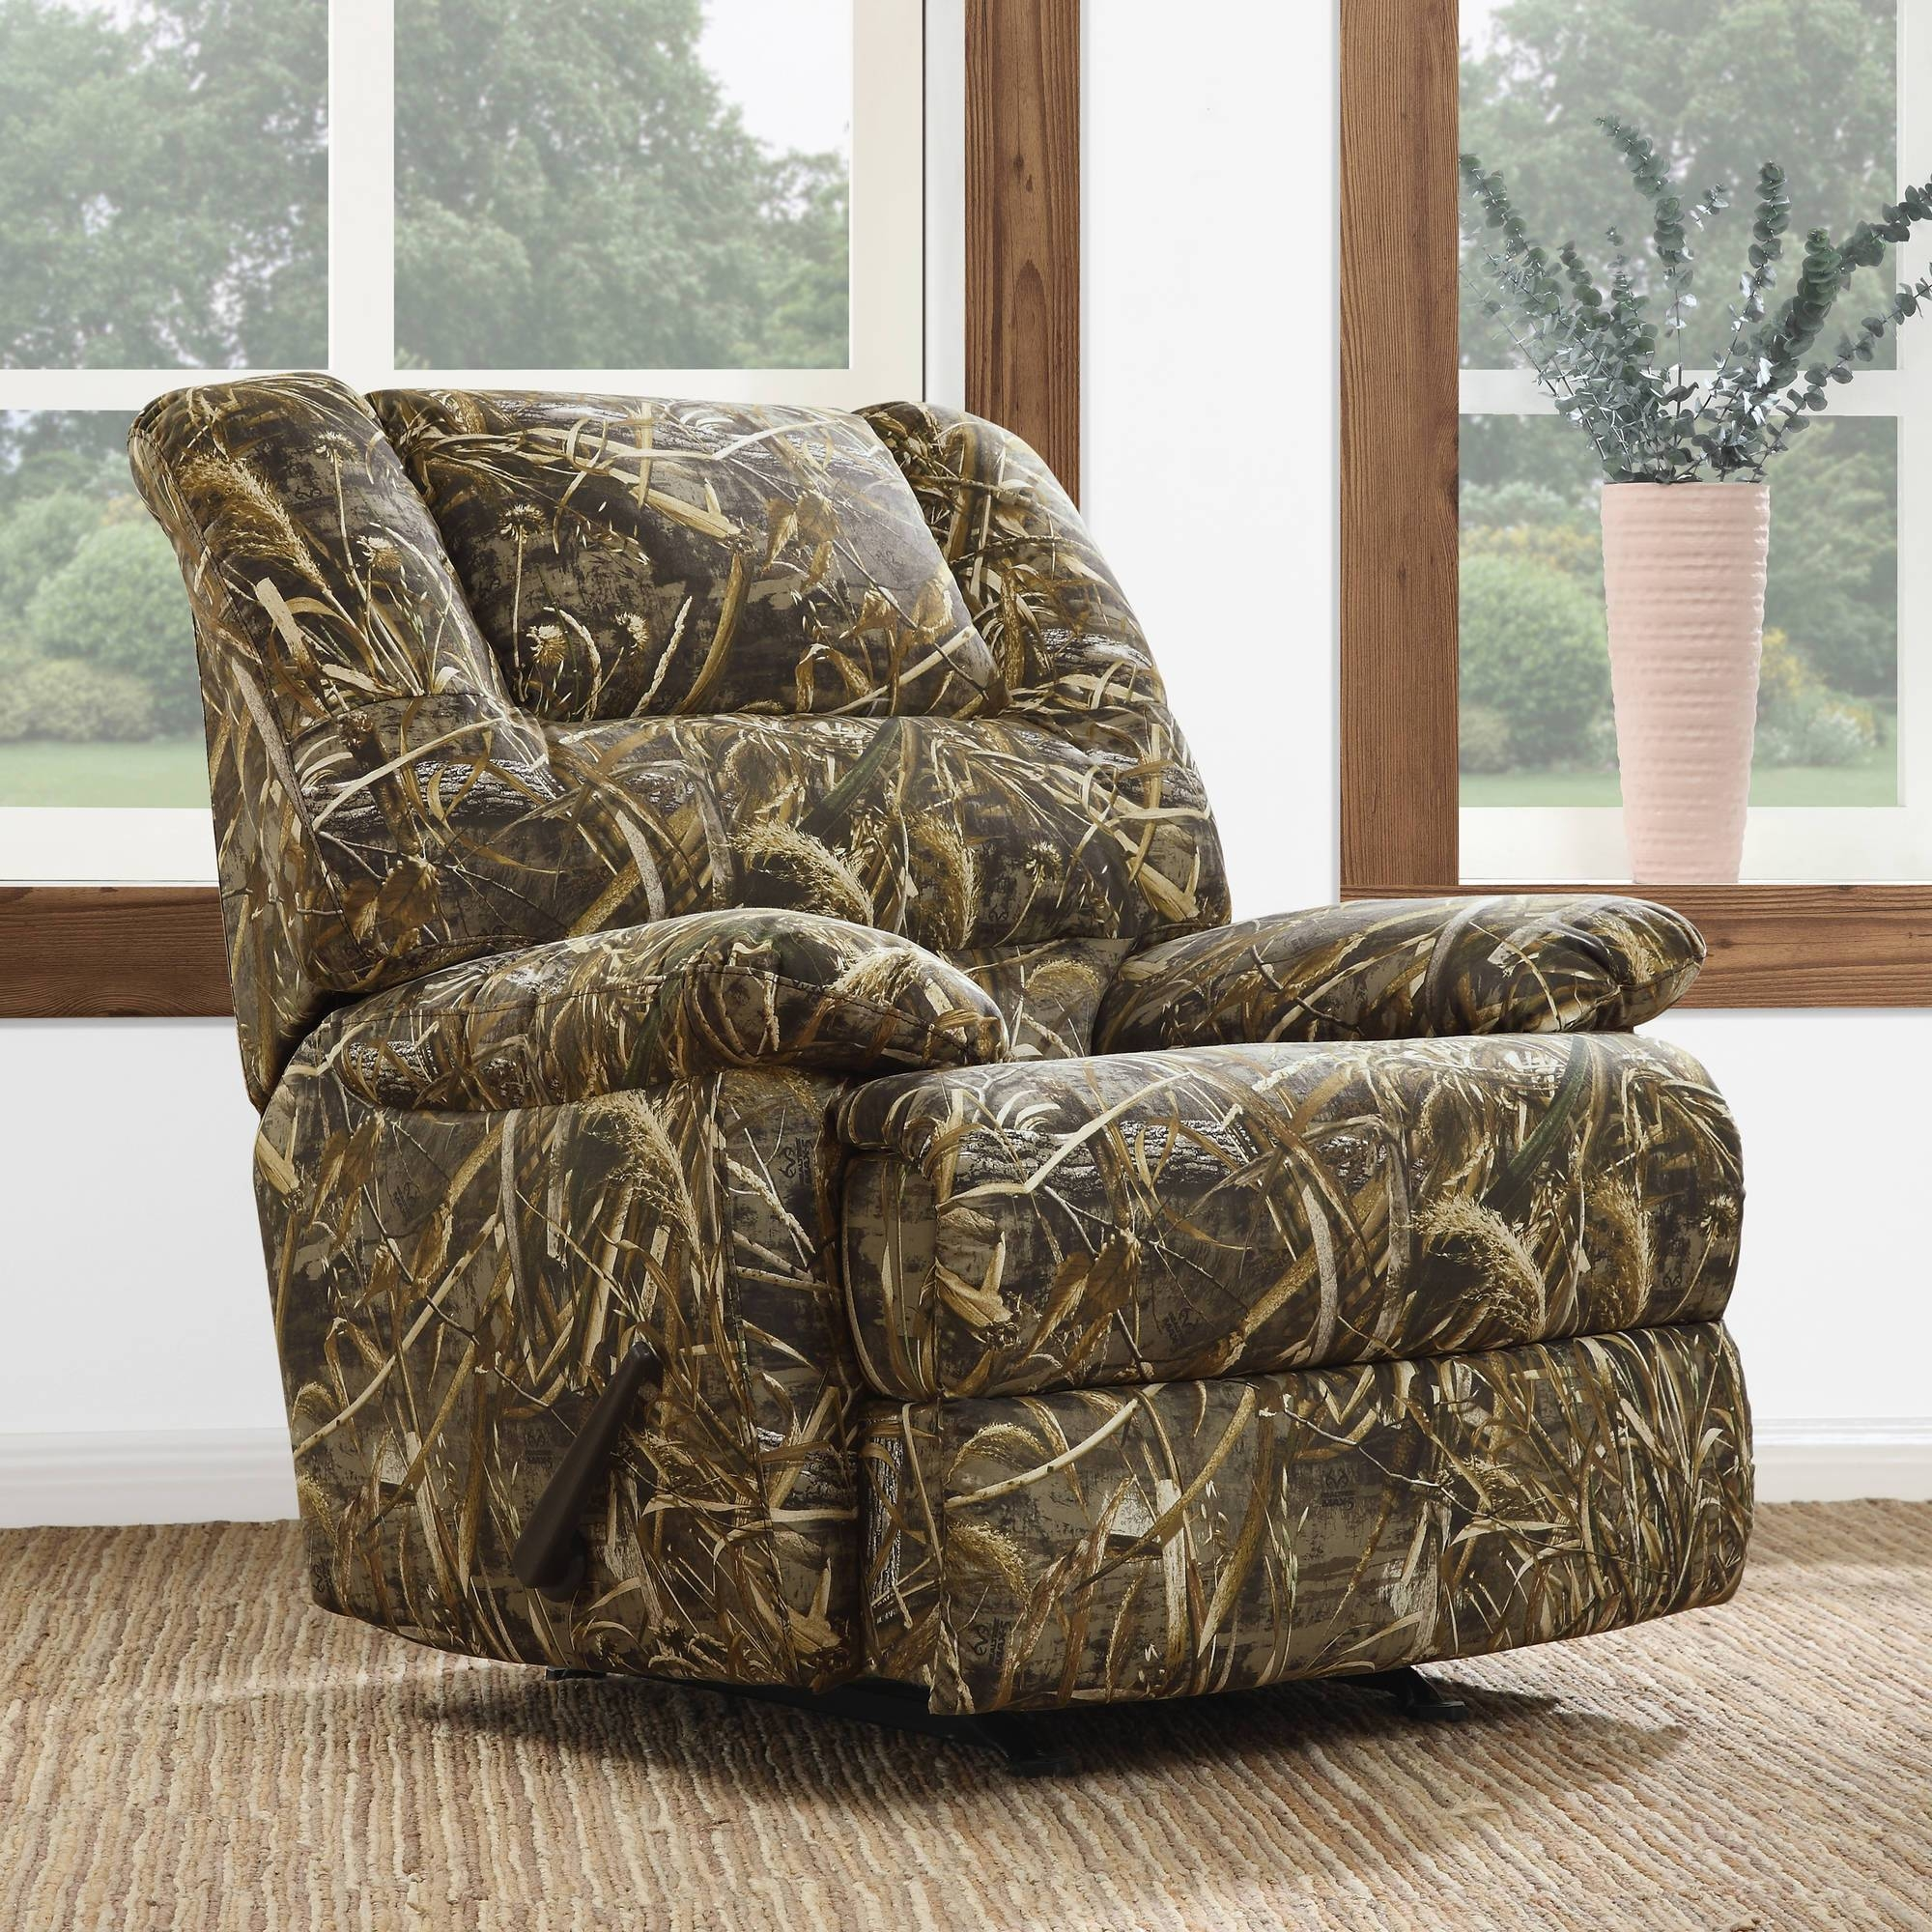 Dorel Living Realtree Camouflage Deluxe Recliner, Camo - Walmart with Camo Reclining Sofas (Image 7 of 15)